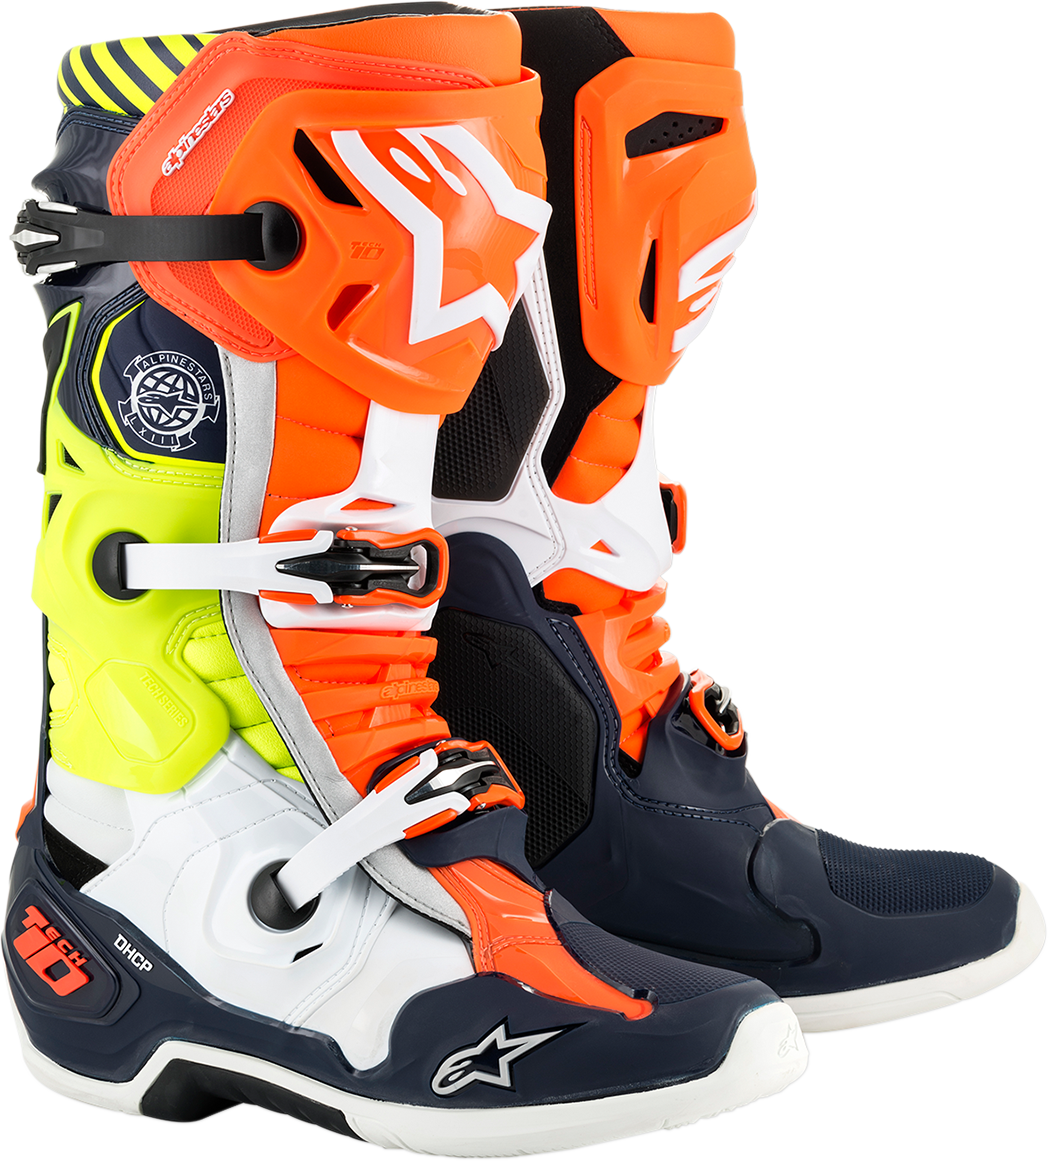 Alpinestars Mens Tech 10 Limited Edition Mxon Offroad MX Dirt Bike Racing Boots